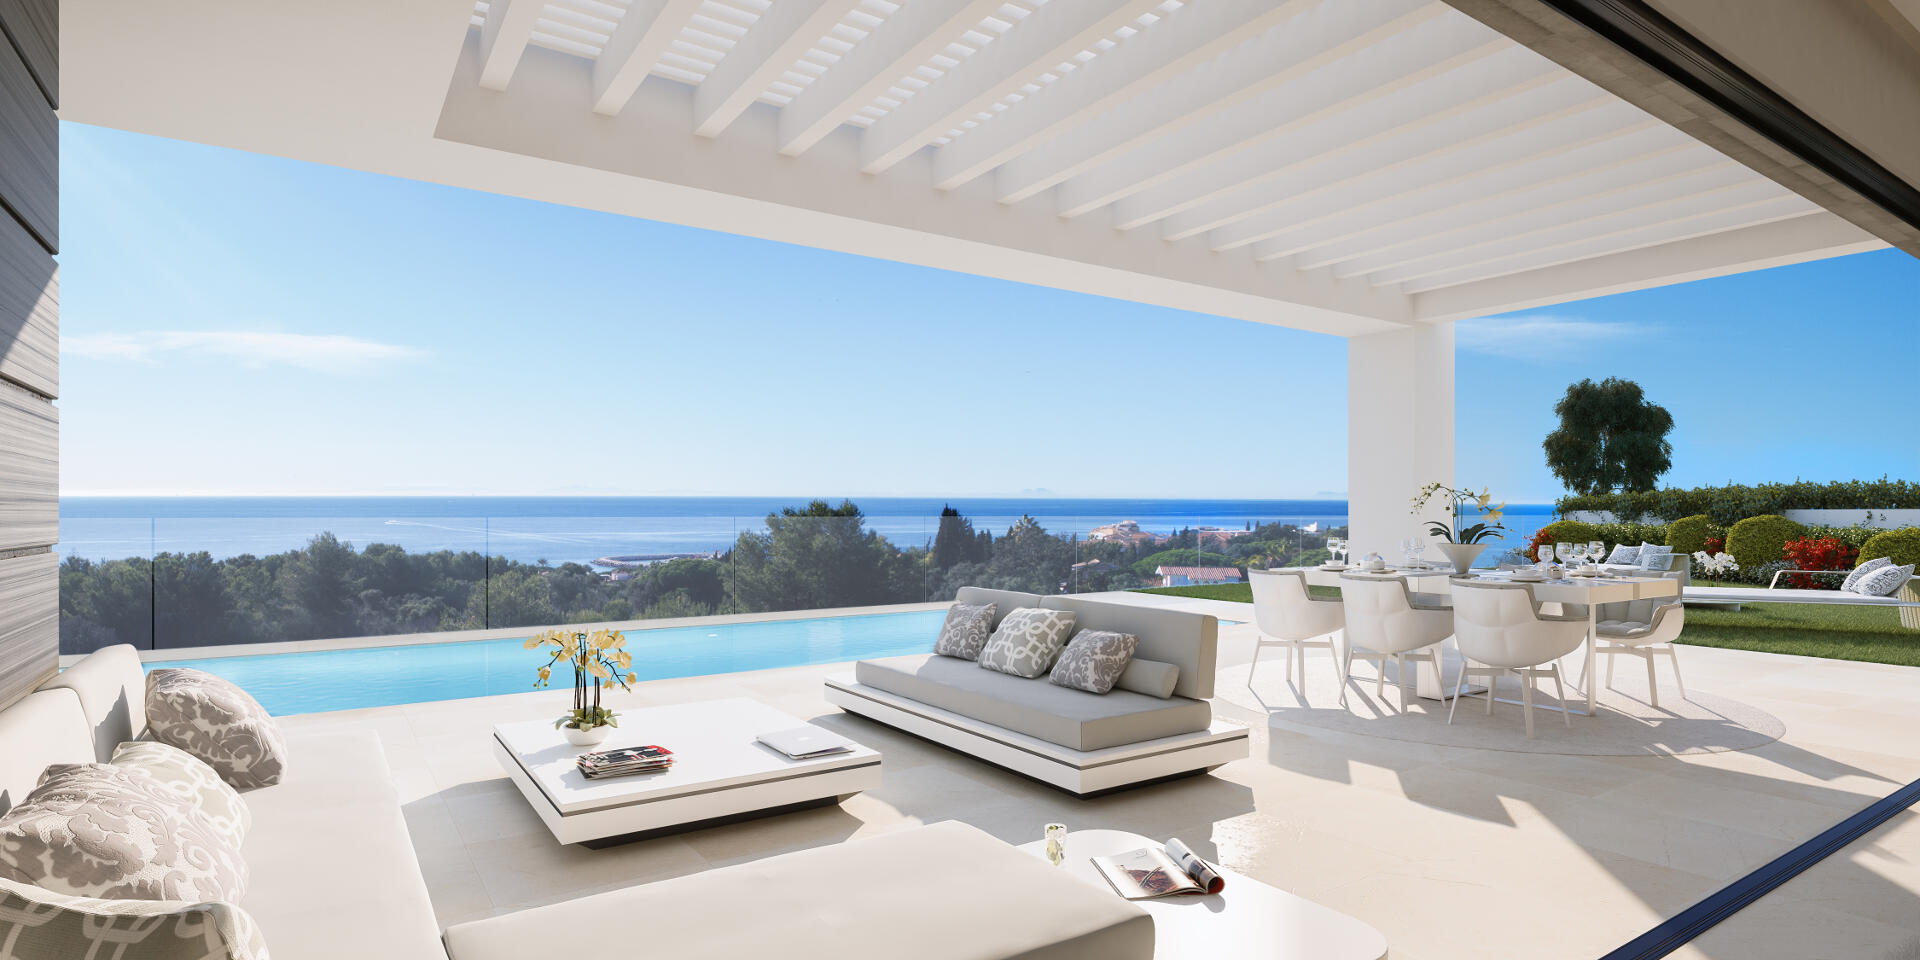 CaboRoyale villa for sale new development cabopino sea view 4 bedroom_Realista Quality Properties Marbella -Type-A